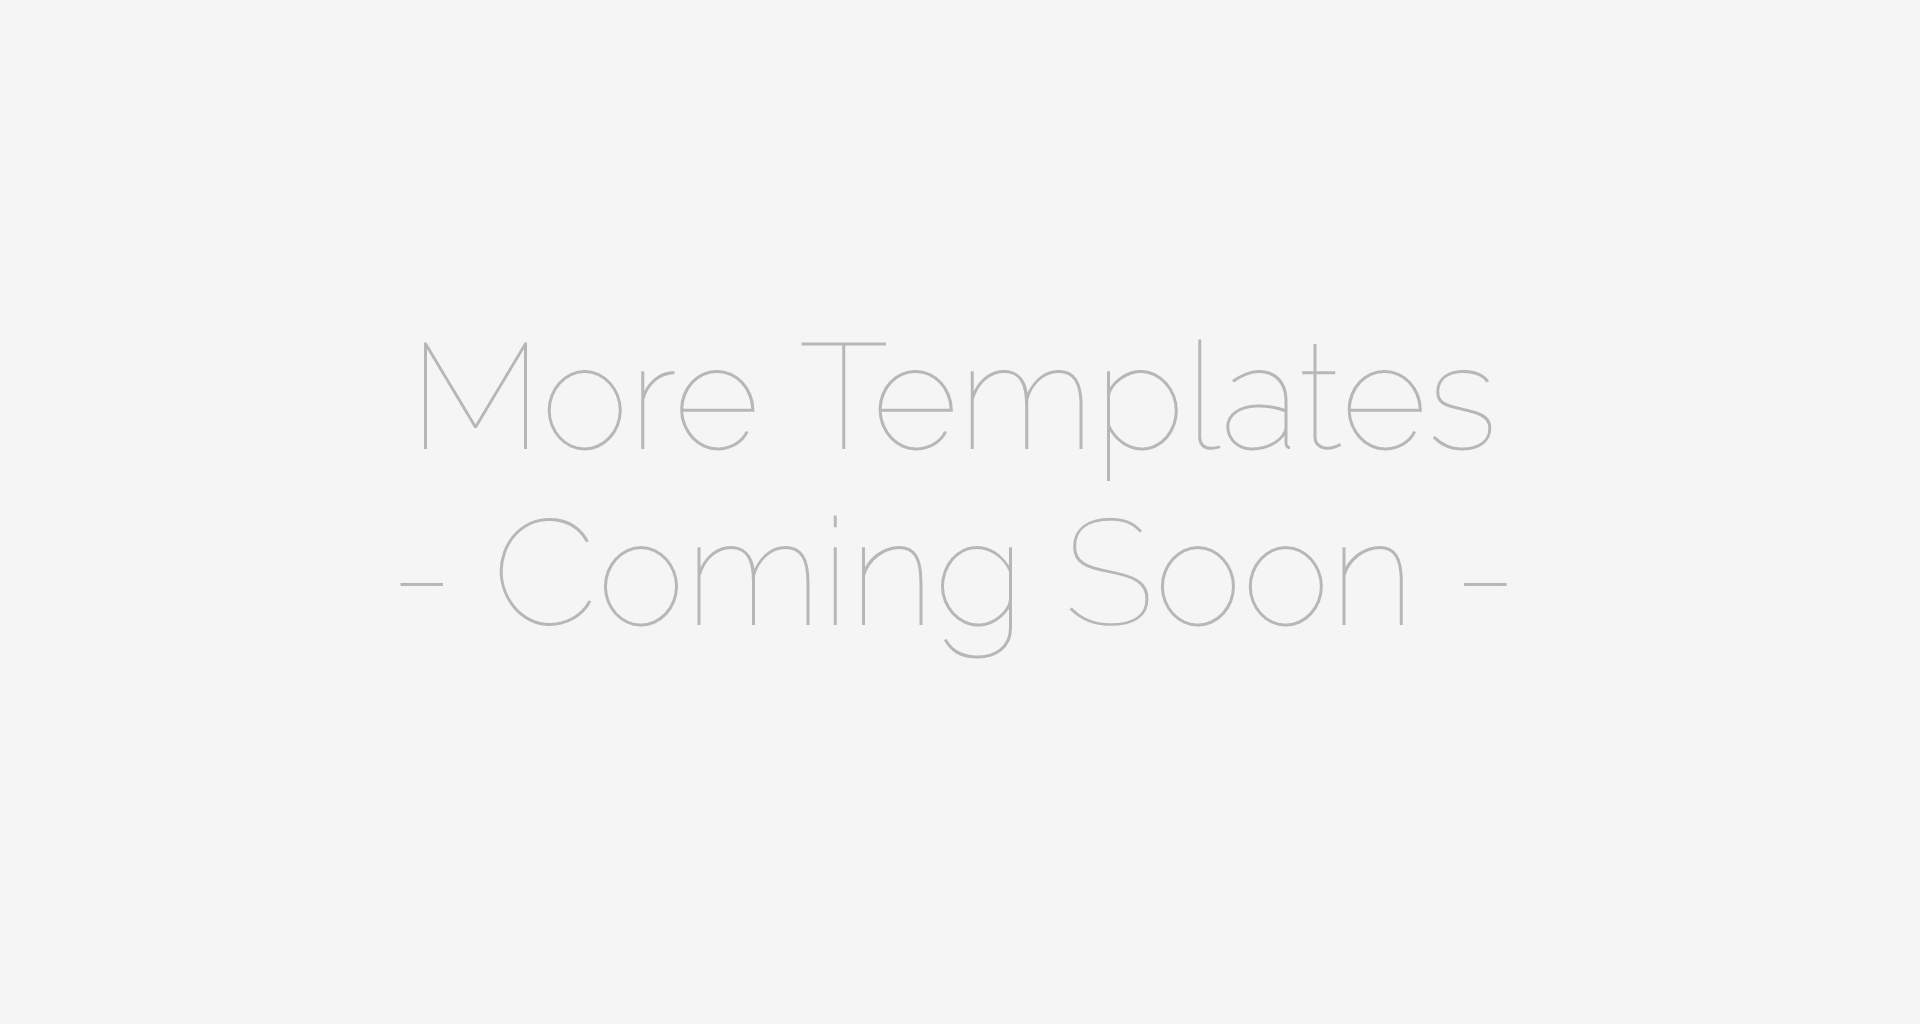 More Templates Coming Soon